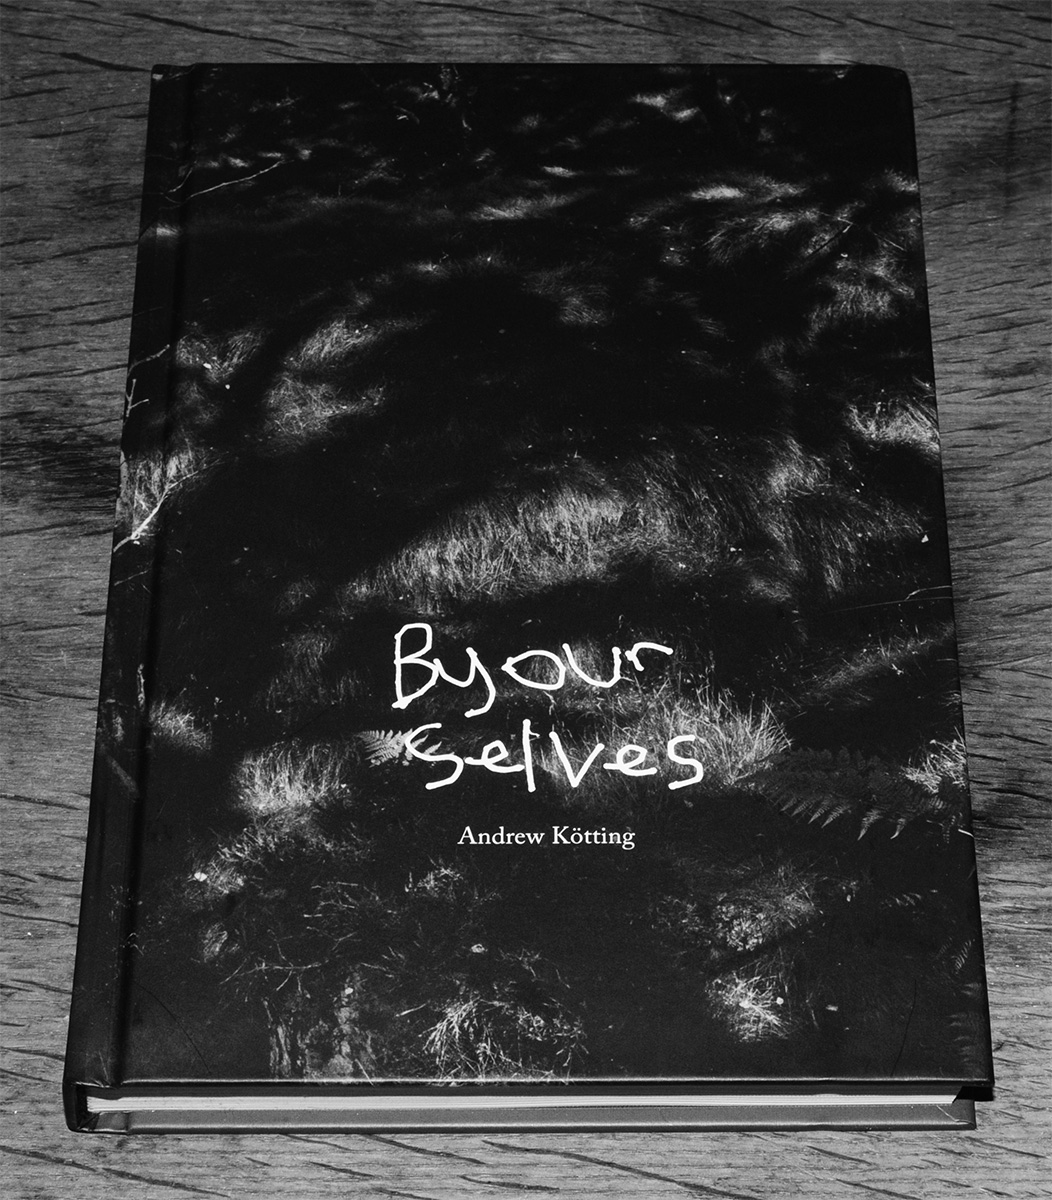 day-2-365b-by-our-selves-andrew-kotting-swedenborg-society-book-4